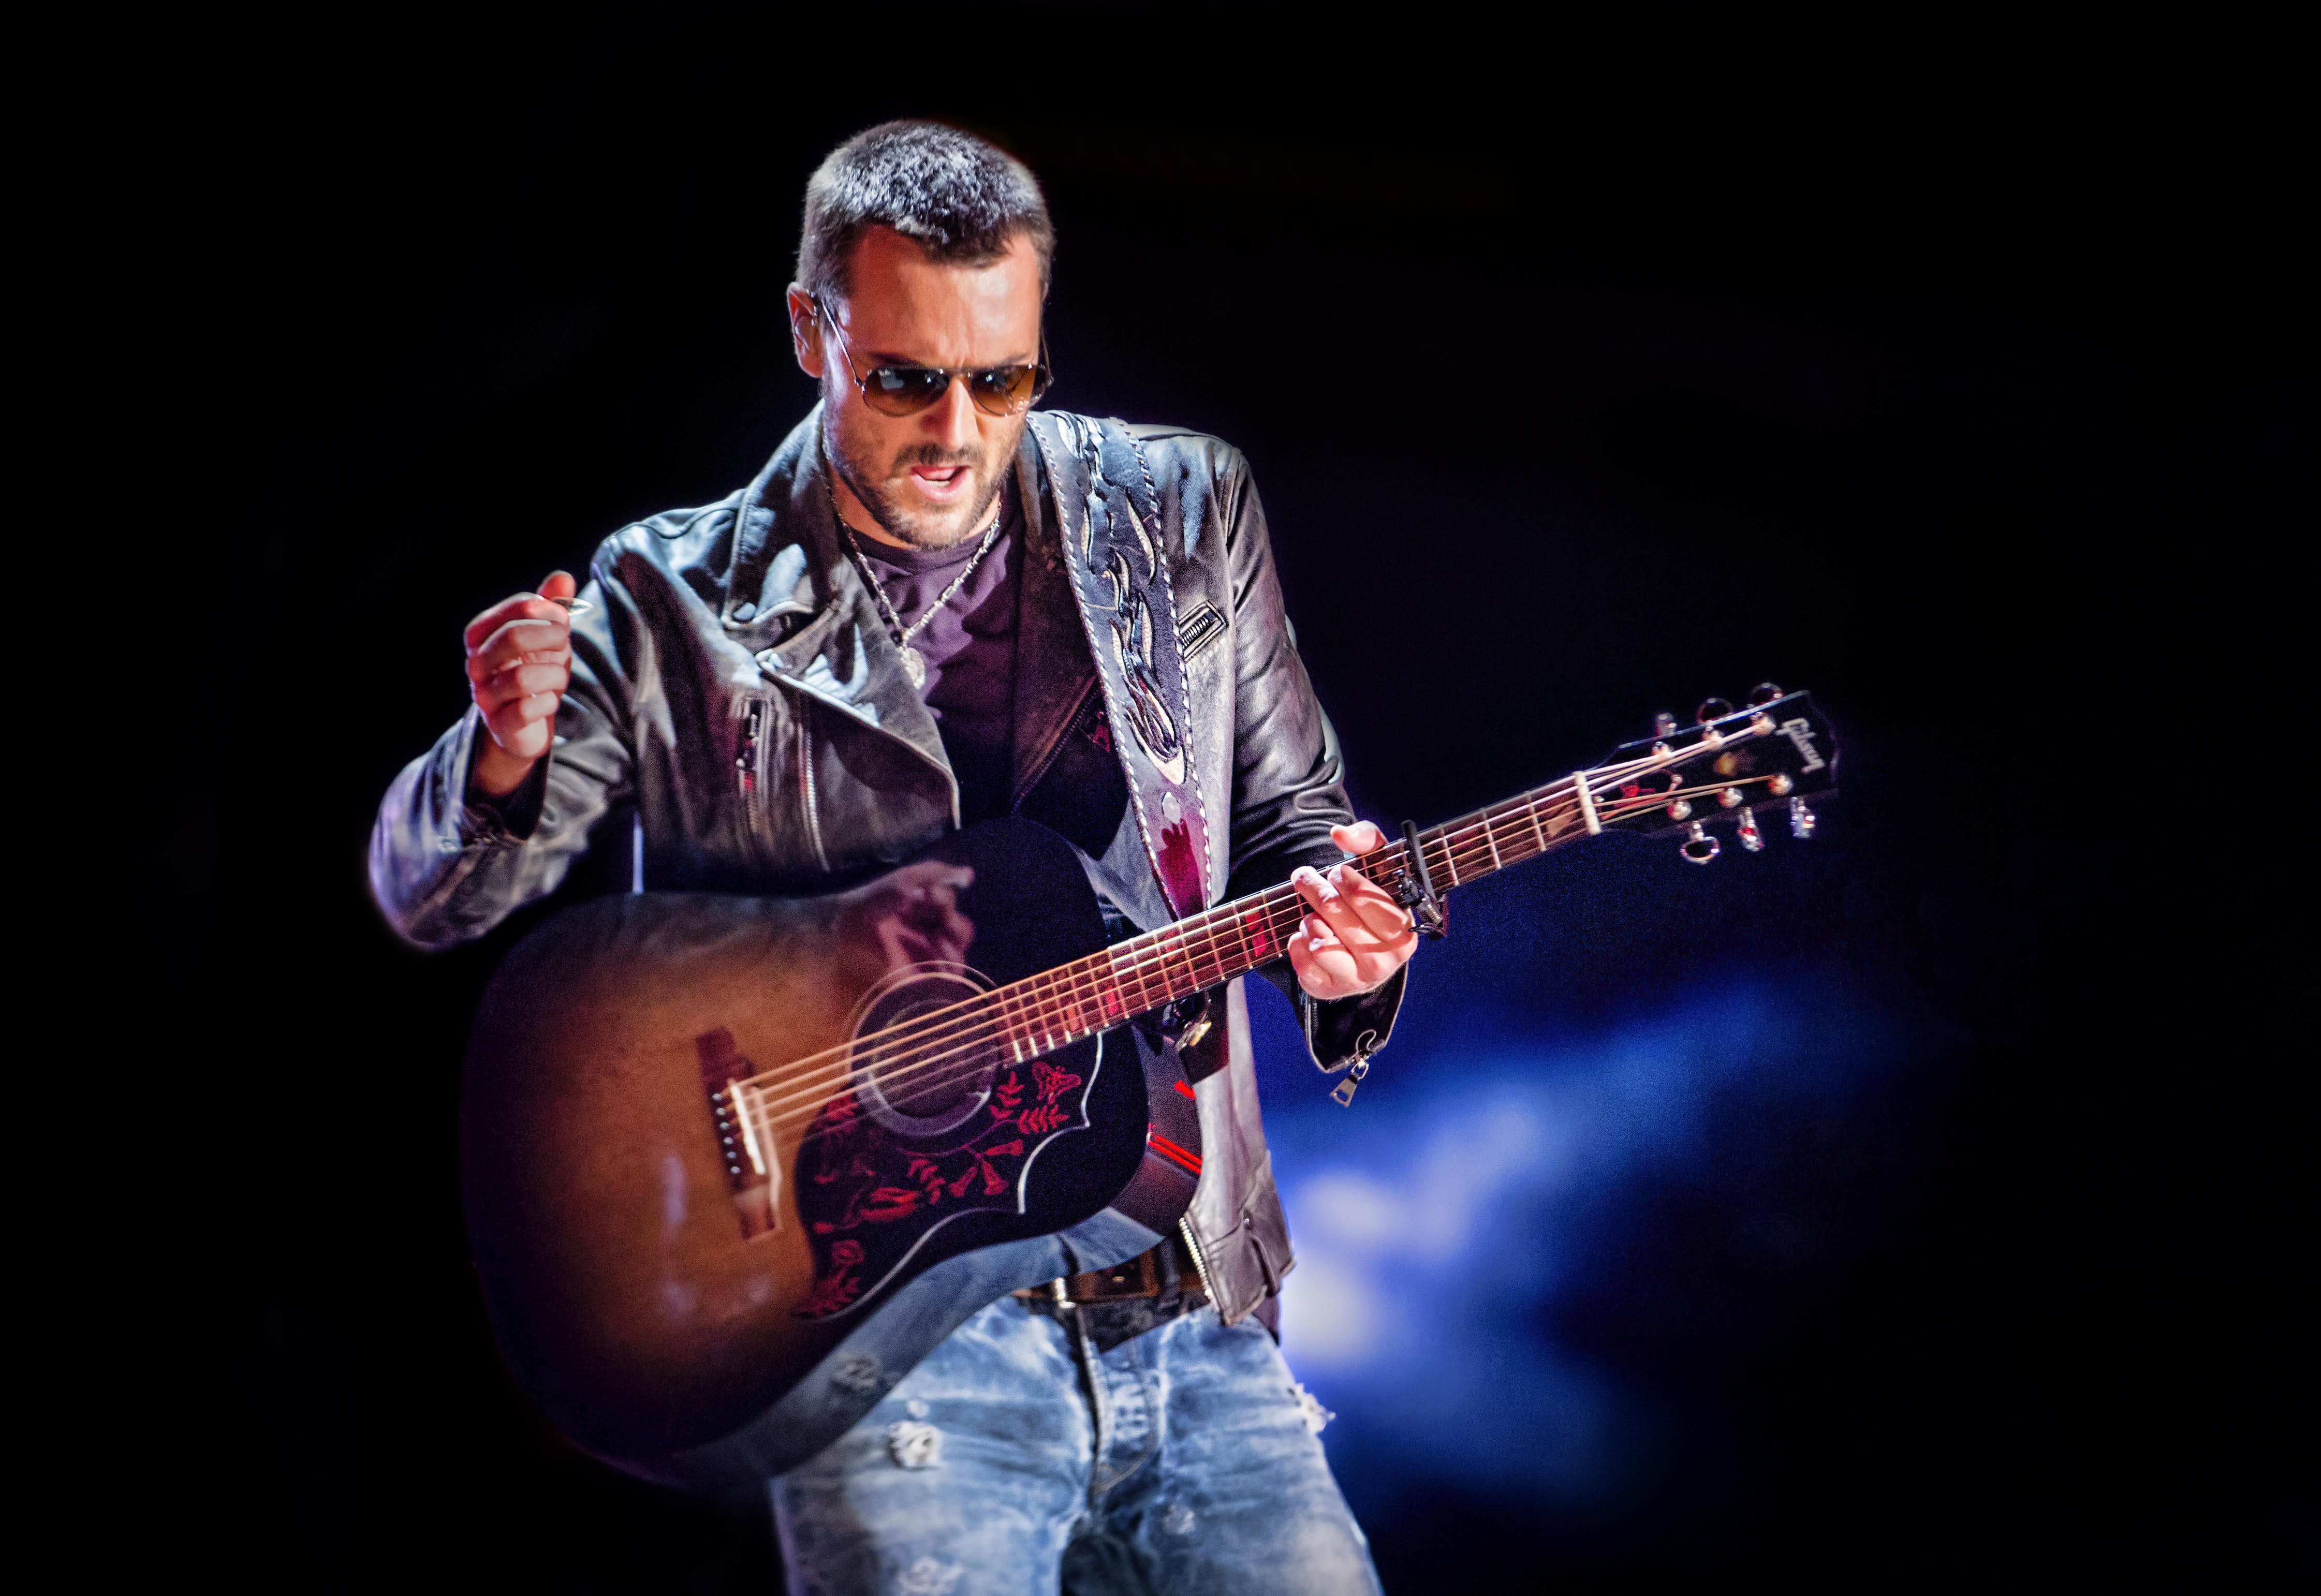 ERIC CHURCH SET TO HEADLINE NASHVILLE'S NISSAN STADIUM SOLO.